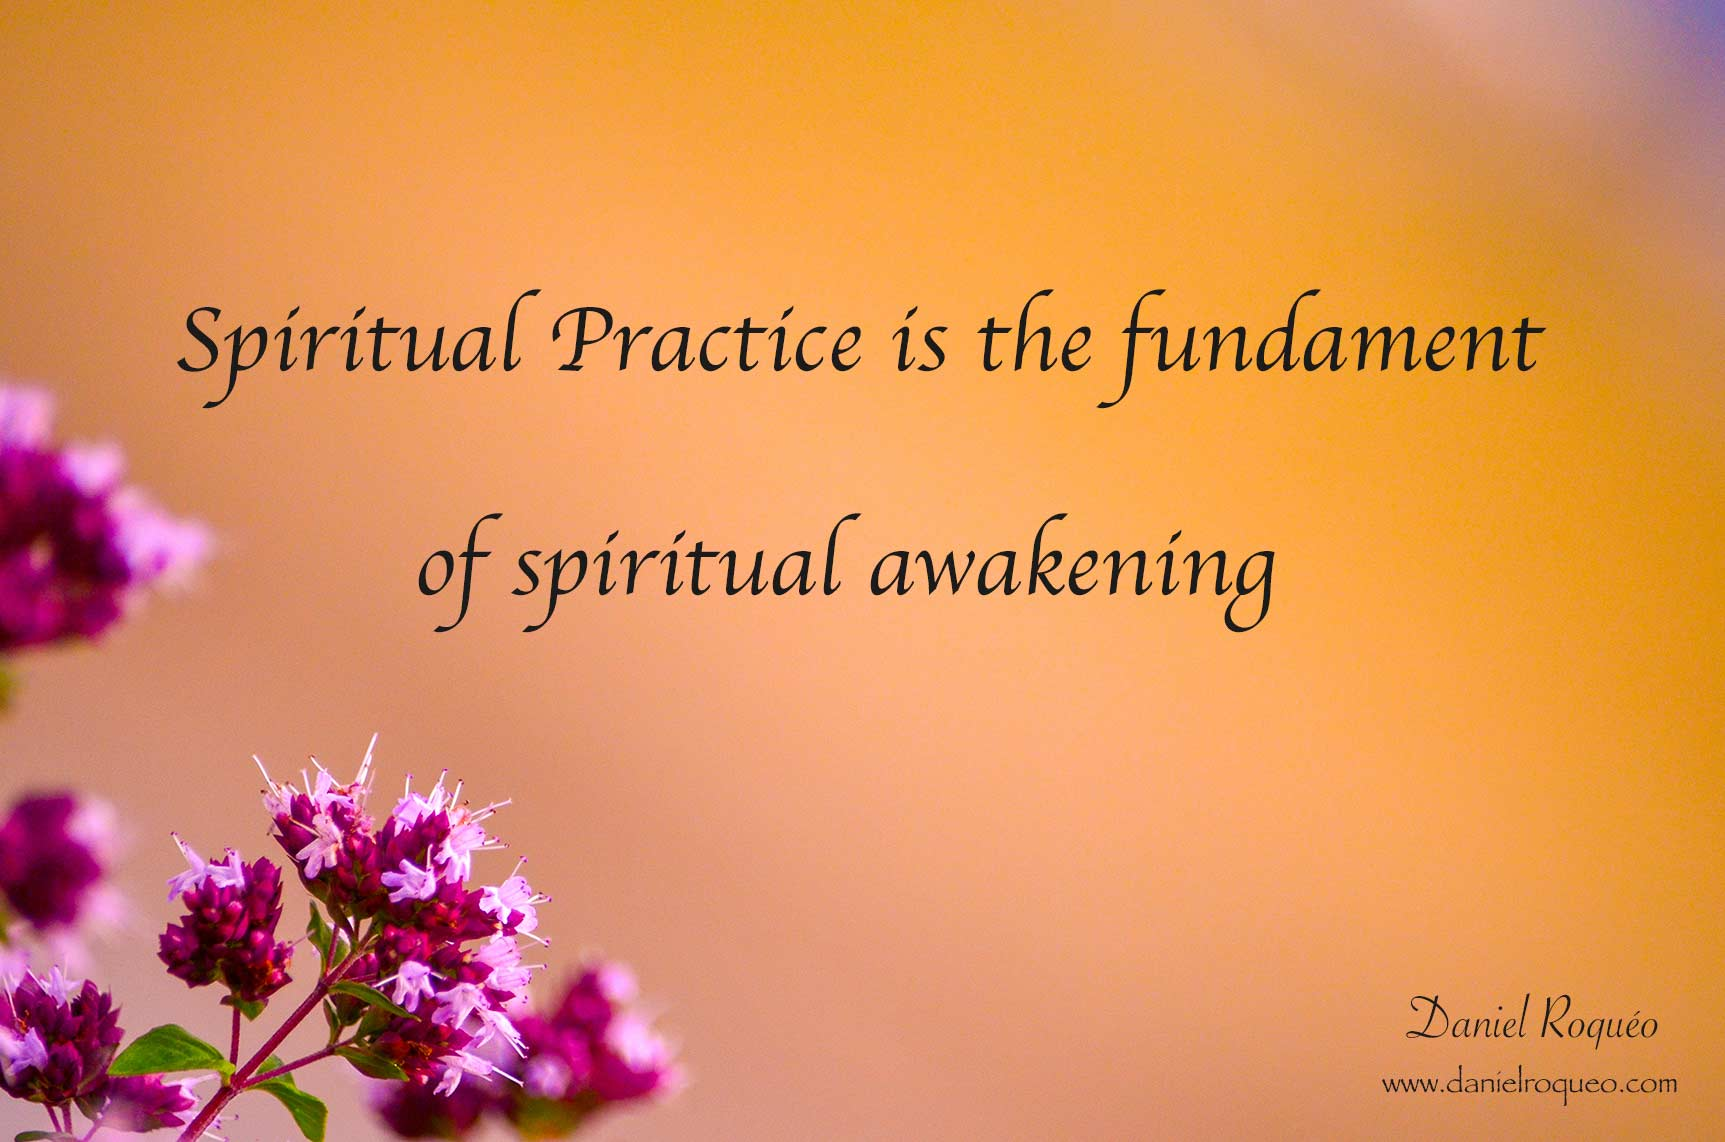 spiritual practice is the very fundament of spiritual growth and unfolding